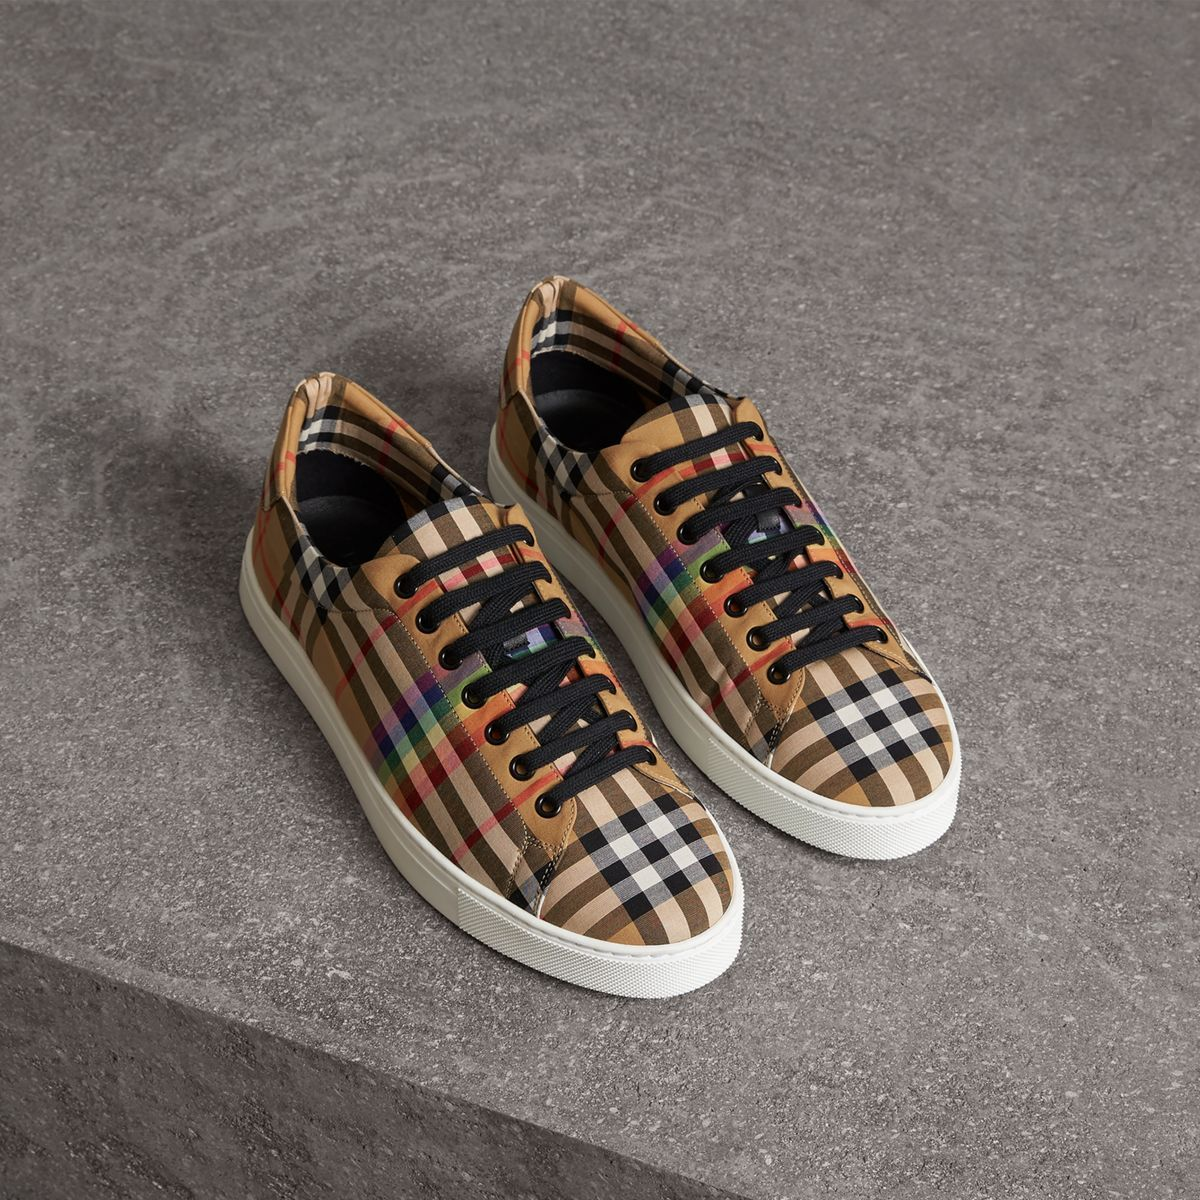 985d9e681 Burberry Rainbow Vintage Check Sneakers